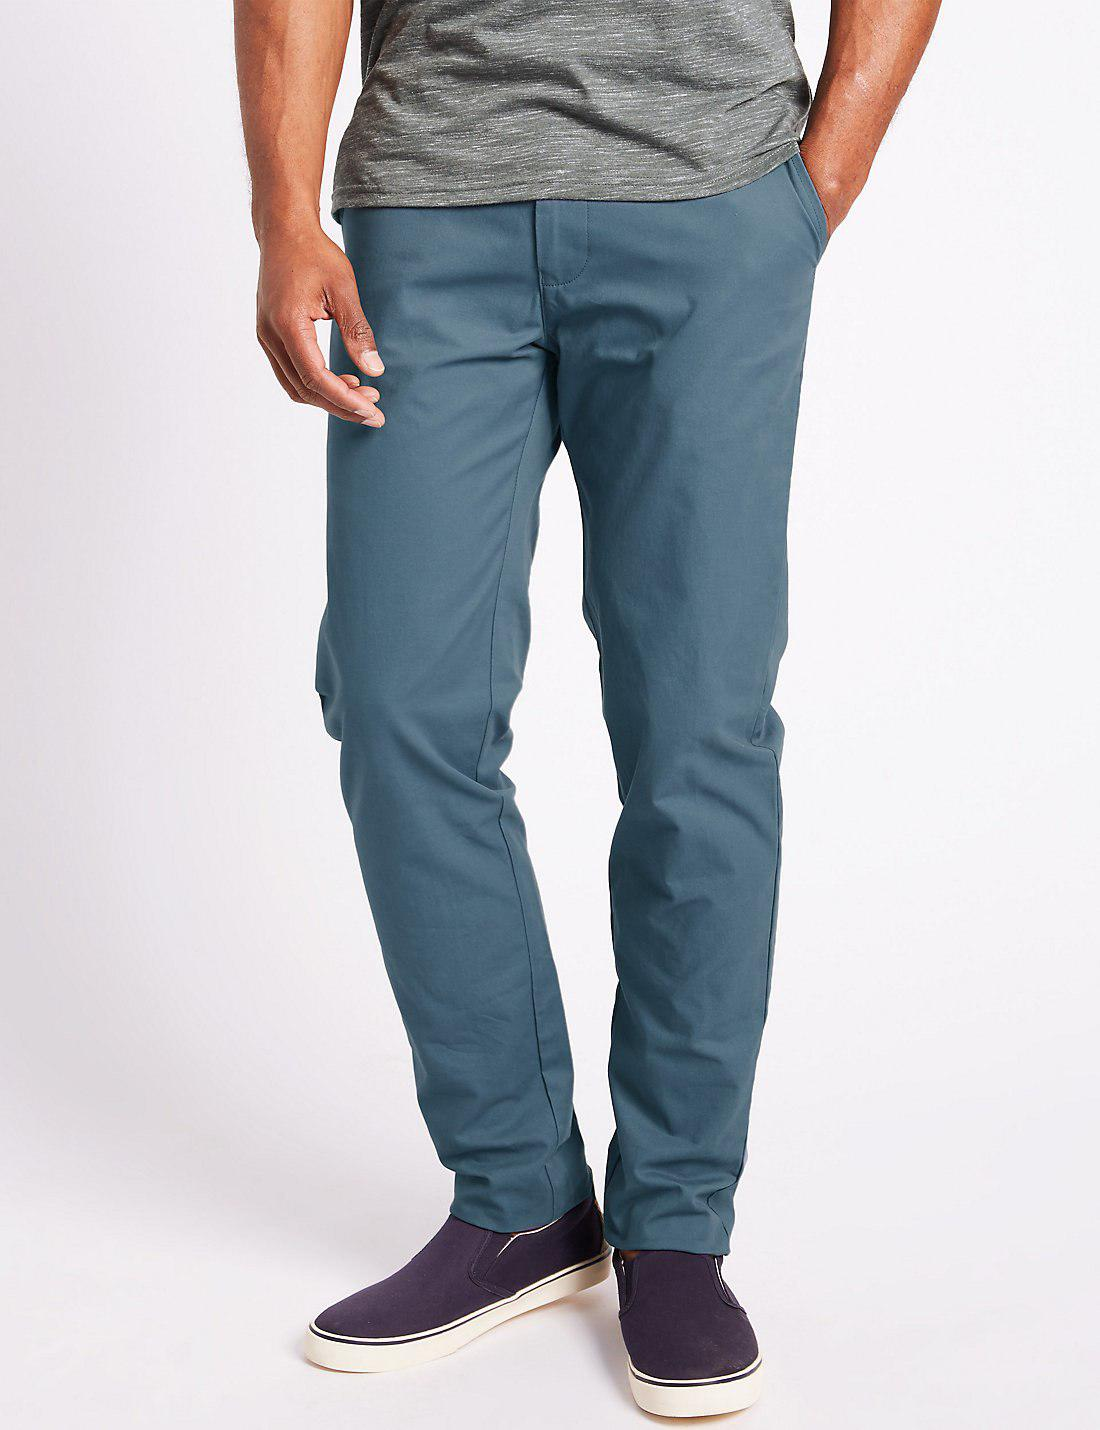 Marks and Spencer Straight Fit Pure Cotton Chinos air force blue Clearance Classic Finishline Online Footlocker Finishline Online GJtrjTt7